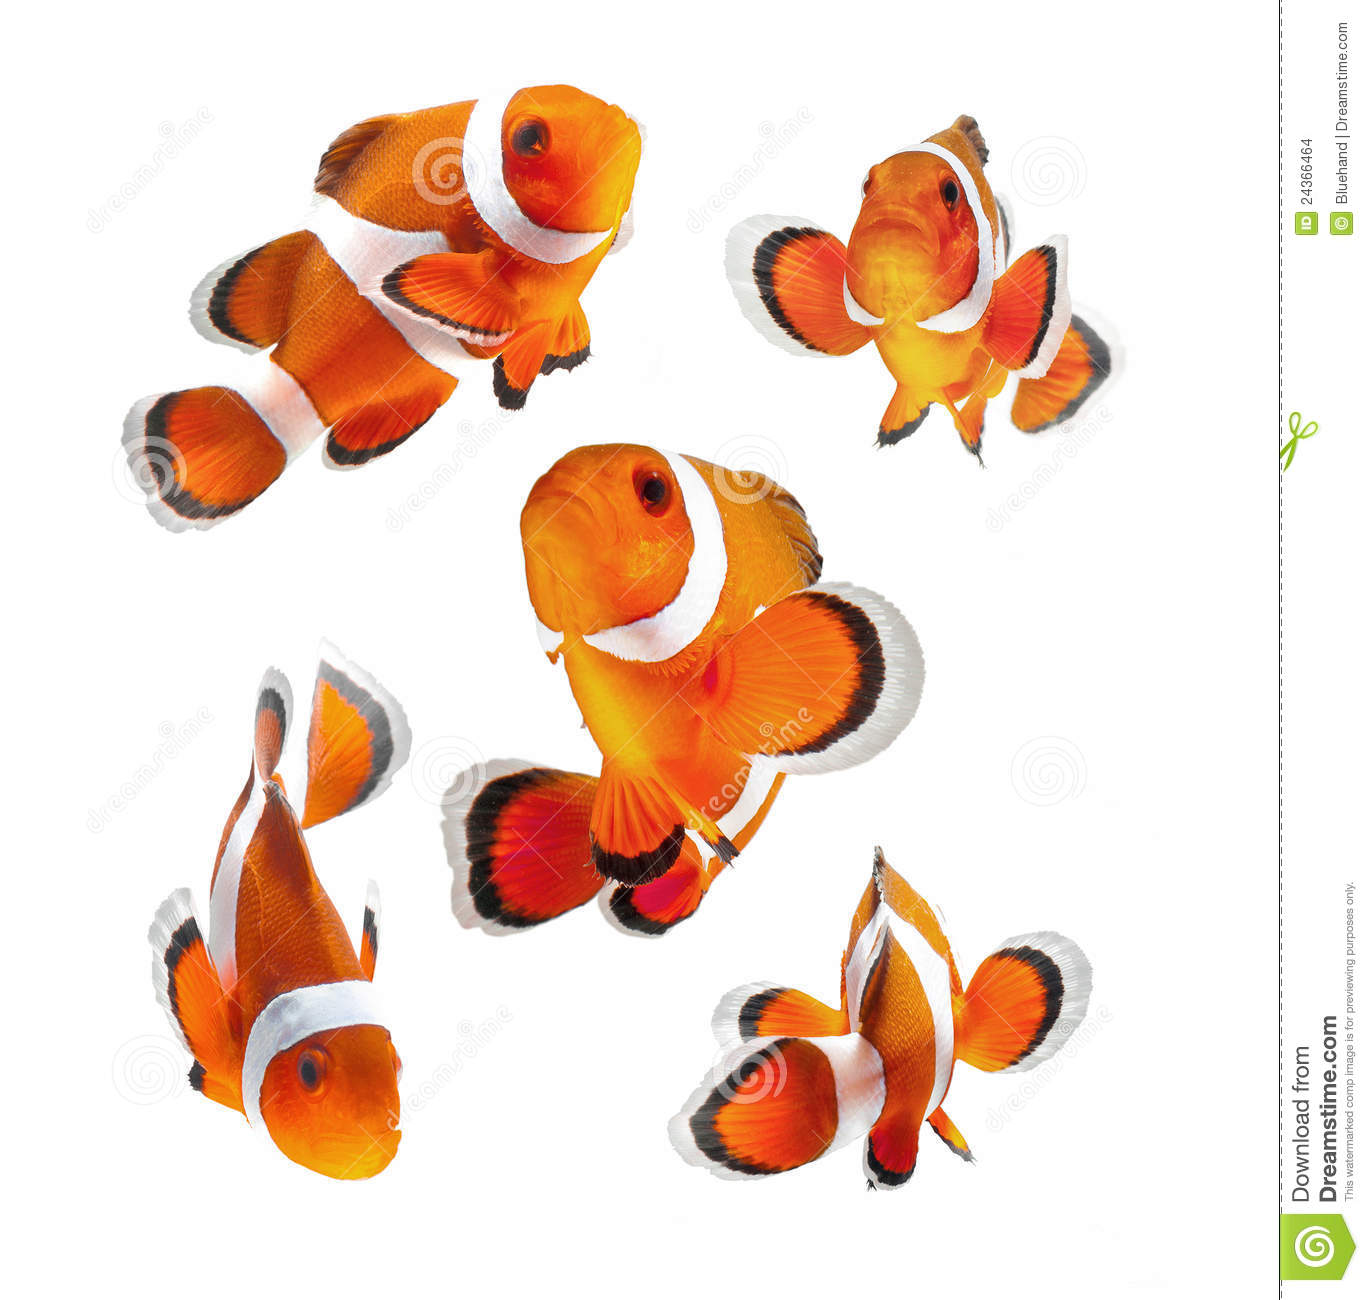 Poissons de clown ou poissons d 39 an mone d 39 isolement sur le for Poisson clown achat